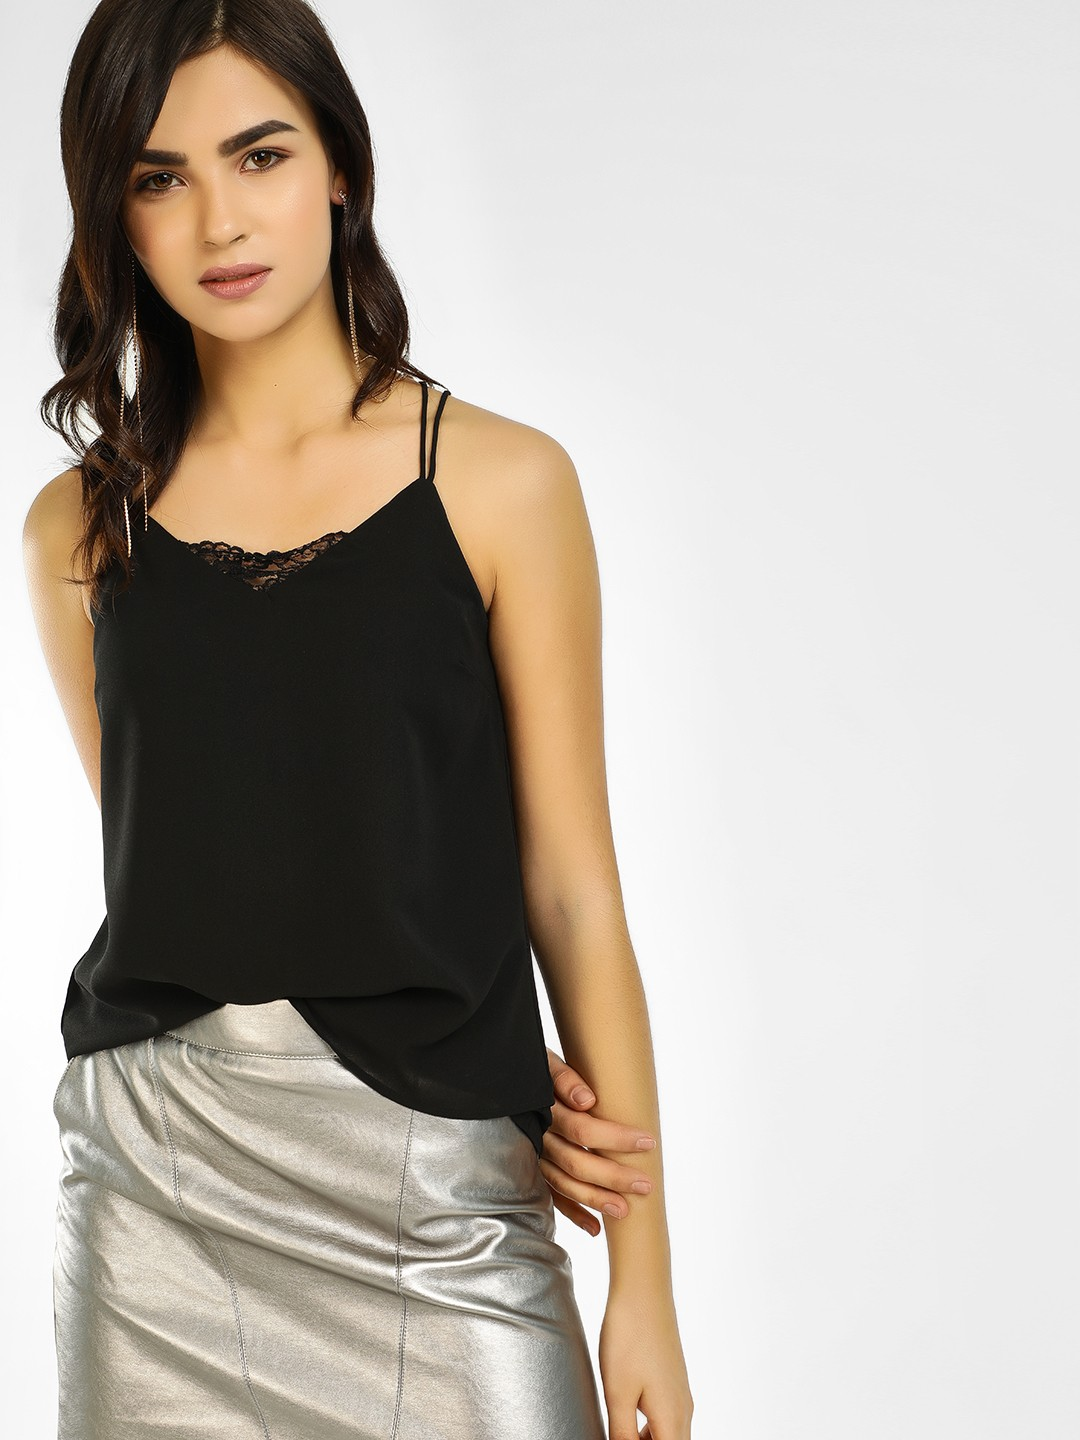 Vero Moda Black Lace Layered Cami Top 1